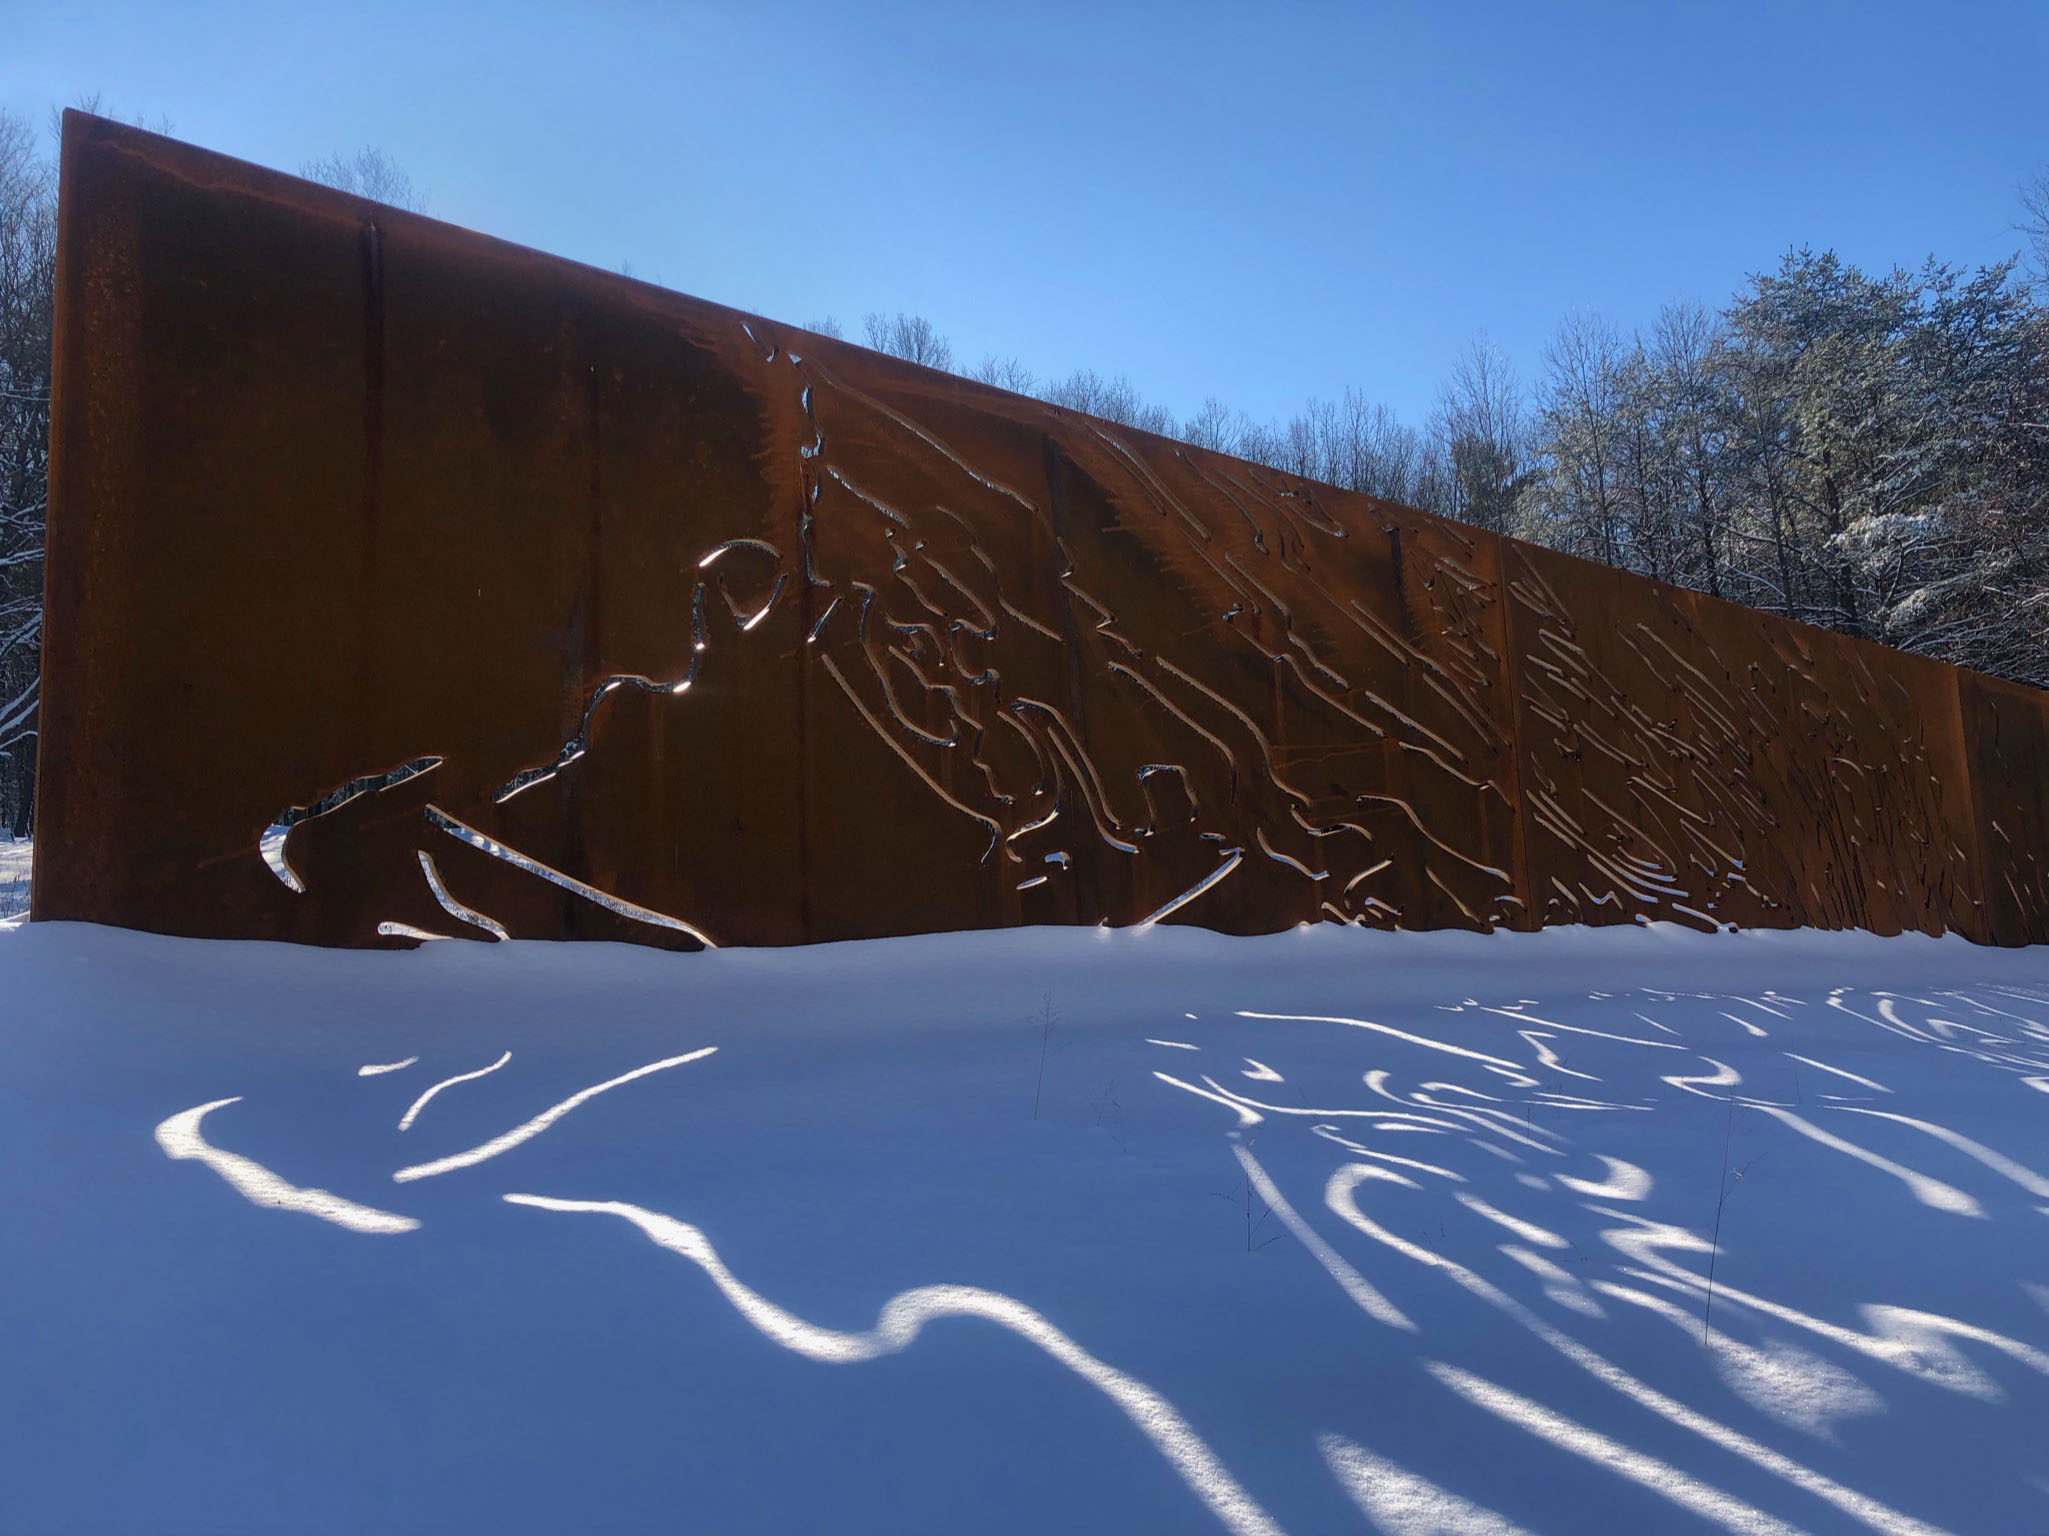 Ridge & Valley | 9' x 67' | plasma-cut corten steel freestanding sculpture